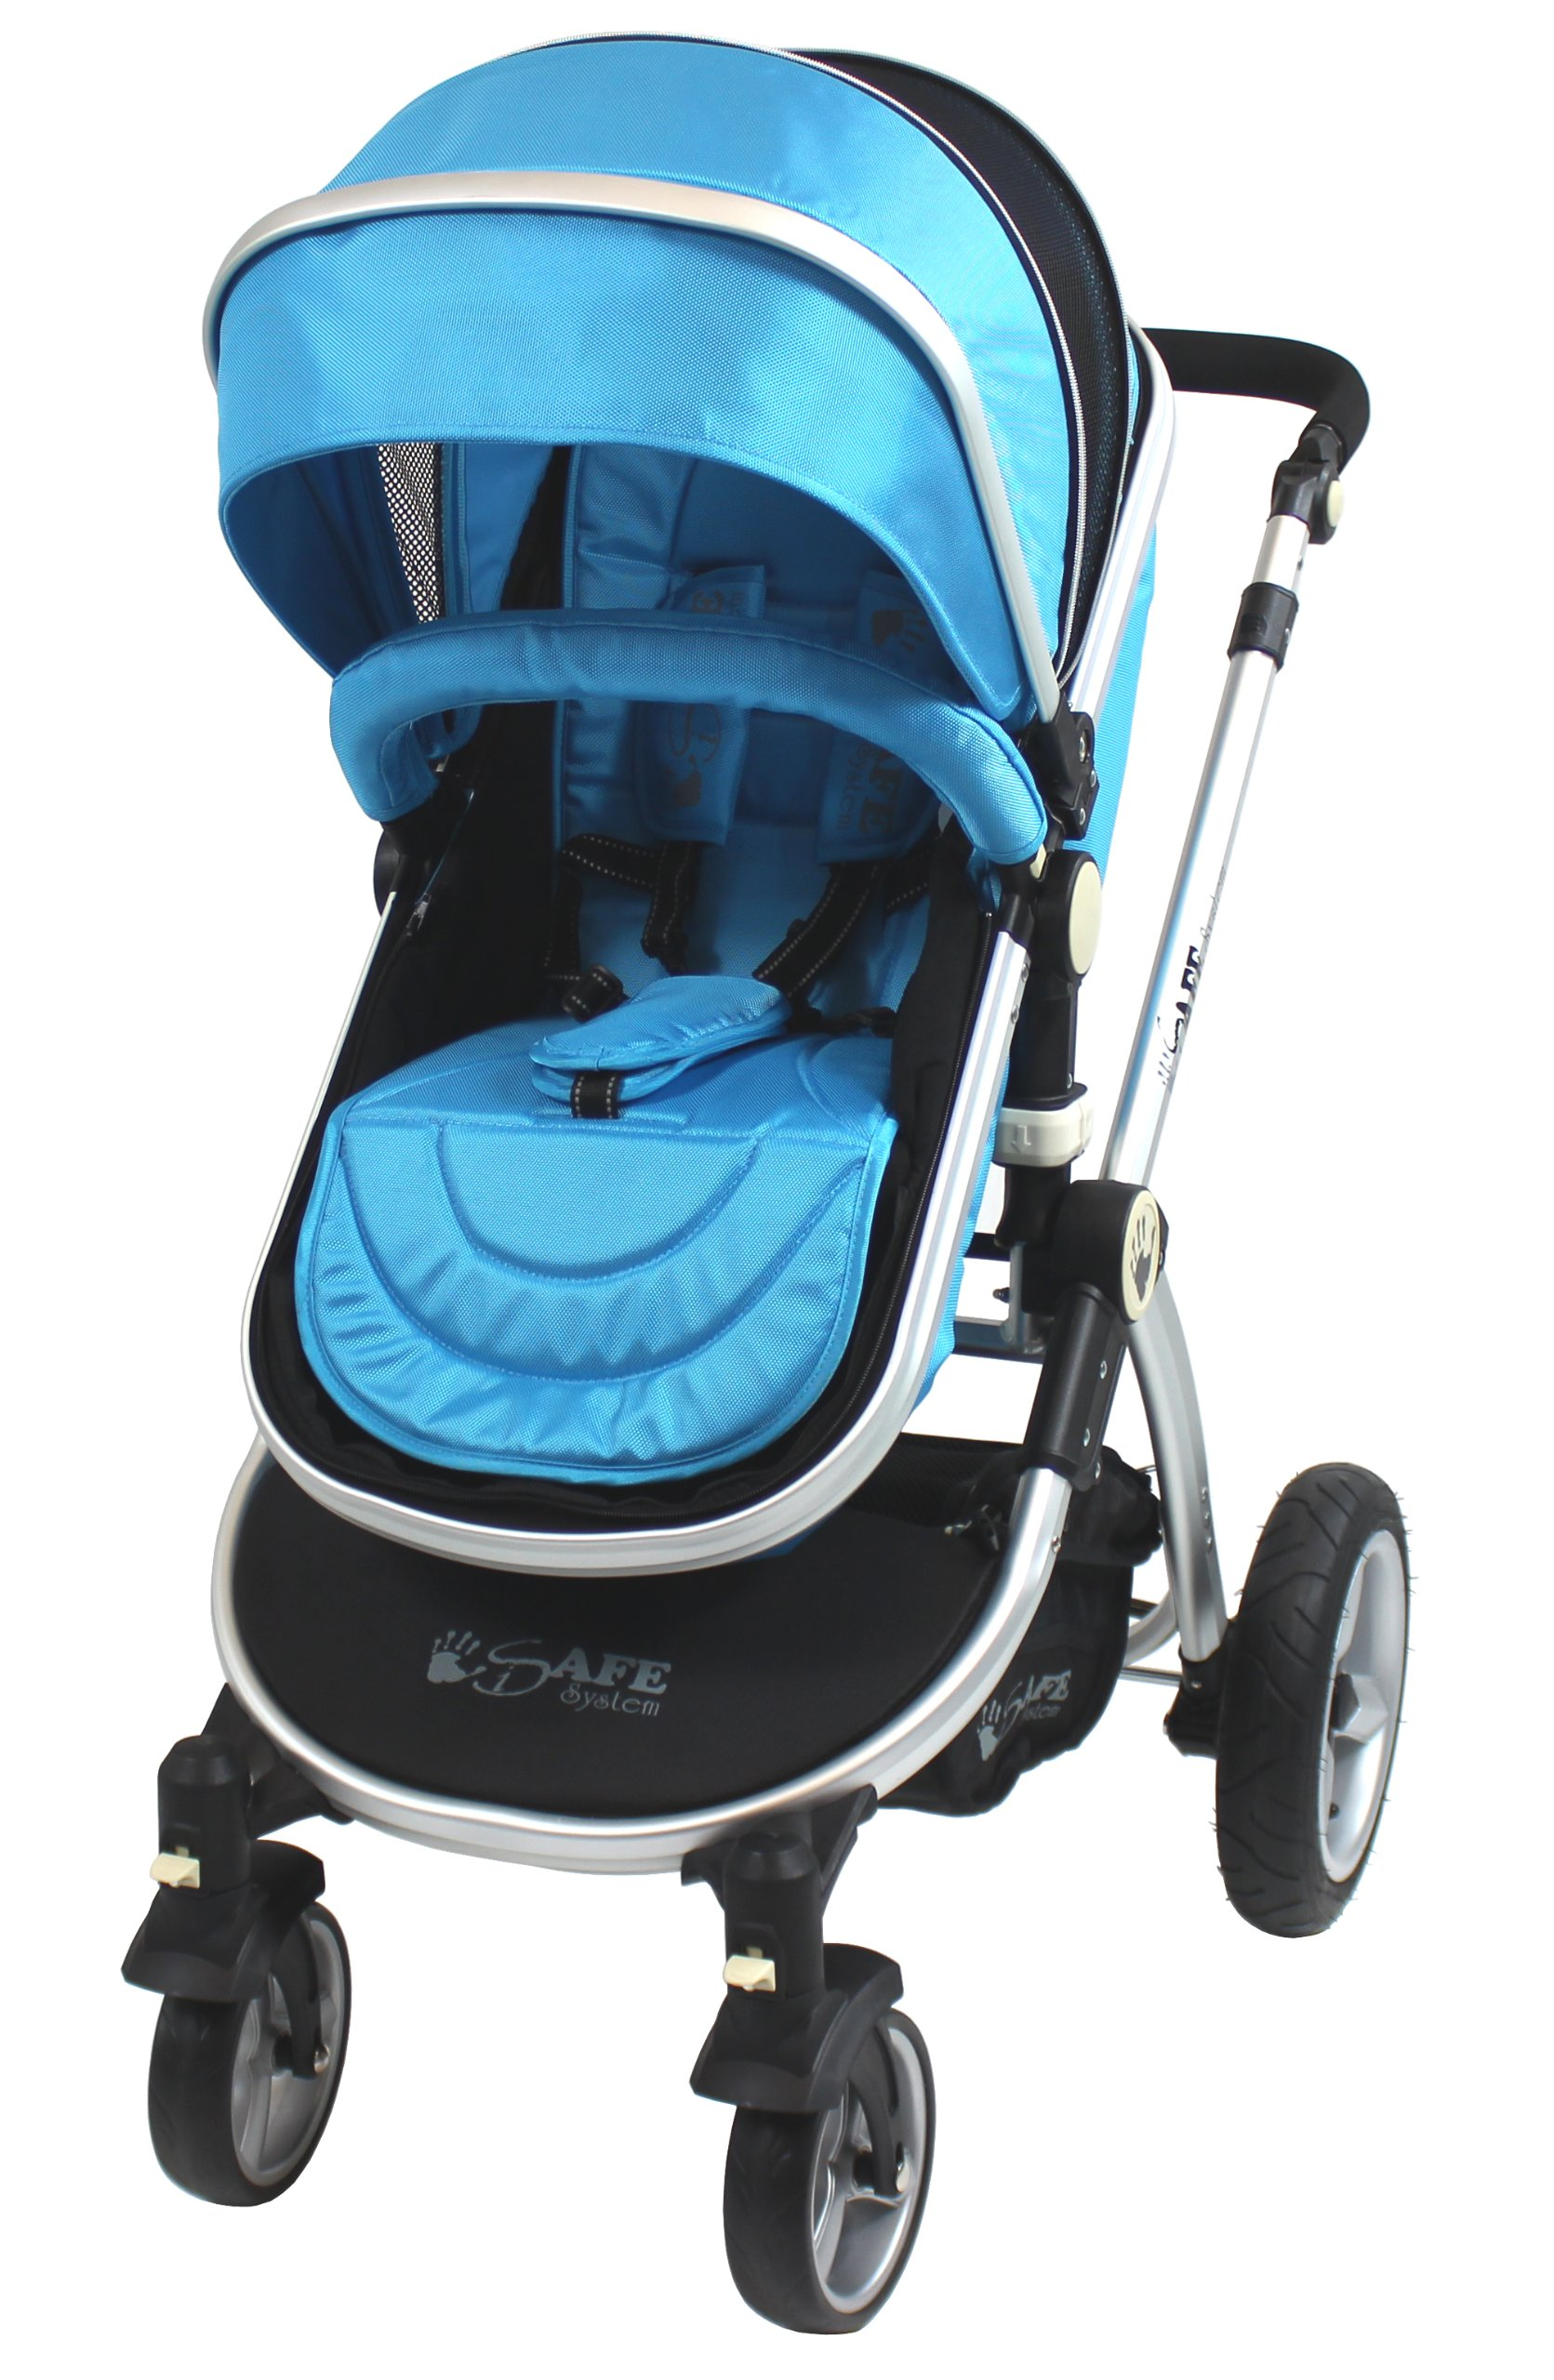 iSafe 2 in 1 Baby Pram System Complete (Ocean) iSafe We Are Proud To Present One Of The Finest 2in1 Stroller/Pram/Pramette/Travel System in the UK & Europe! 2 in 1 Stroller / Pram Extremely Easy Conversion To A Full Size Carrycot For Unrivalled Comfort. Complete With Boot Cover, Luxury Liner, 5 Point Harness, Raincover, Shopping Basket With Closed Ziped Top High Quality Rubber Inflatable Wheels With The Full All around Soft Suspension For That Perfect Unrivalled Ride 5